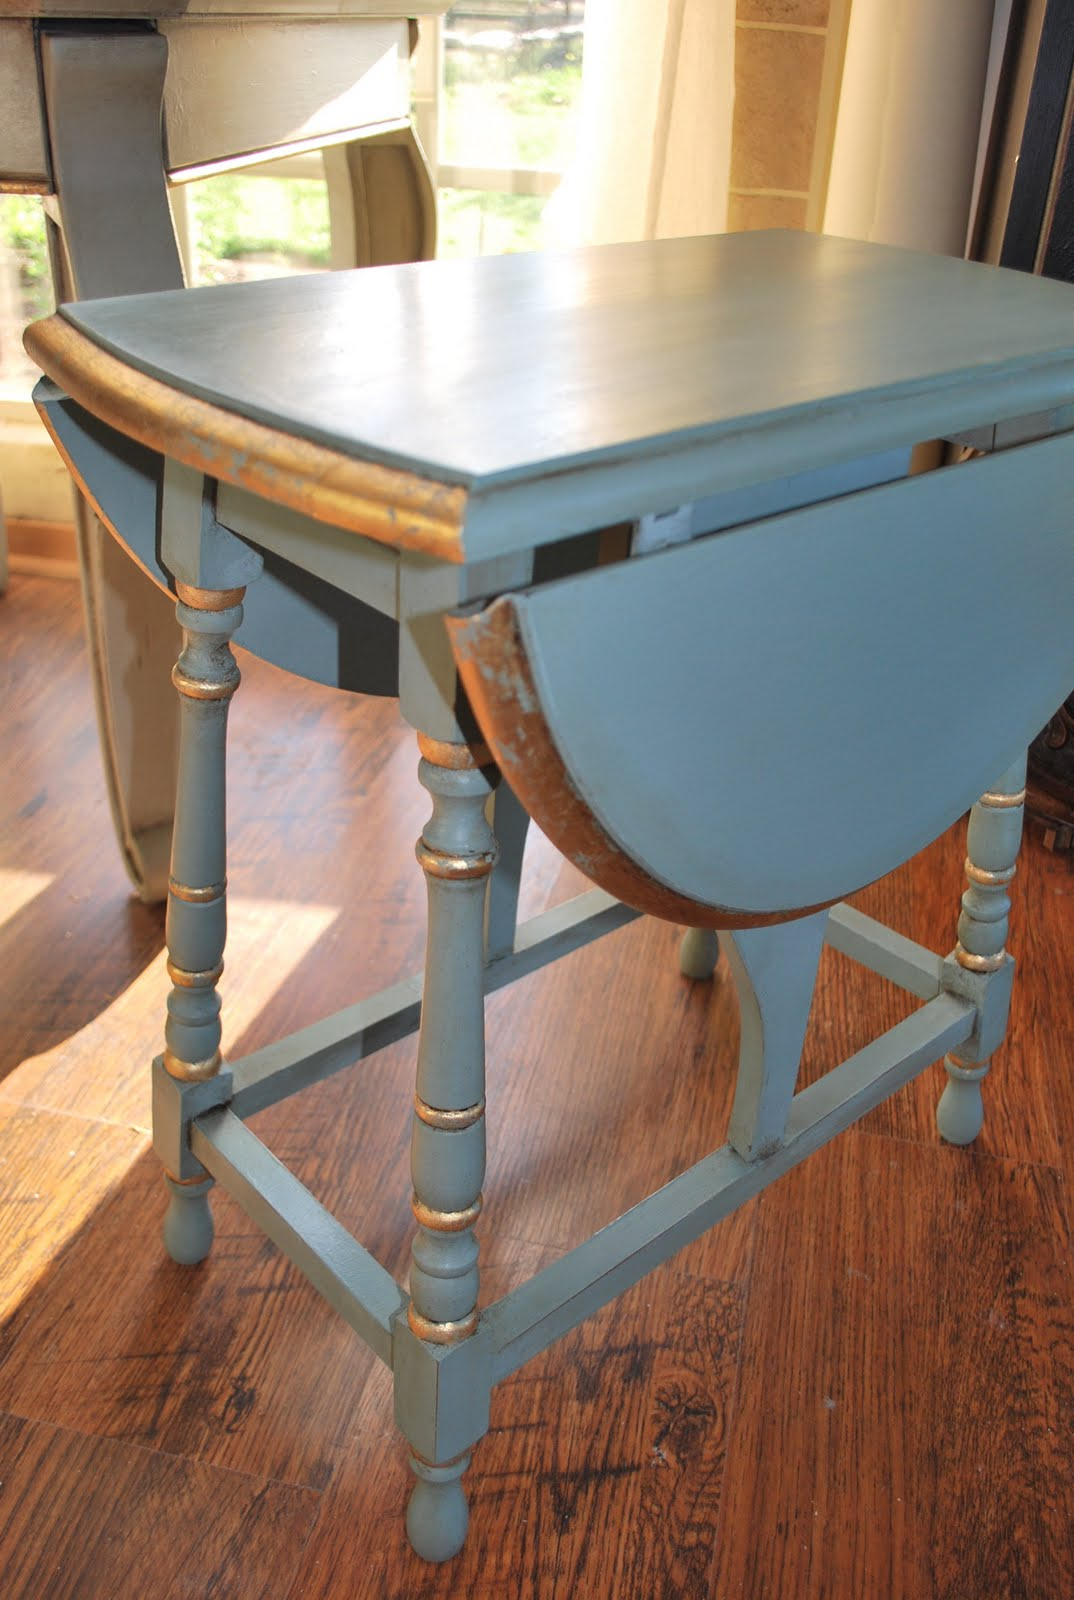 Awesome Duck Egg Blue Drop Leaf Table U2013 SOLD! But I Did Add Some Old White Over The  Gold Leafing And Rubbed Back To Reveal Just A Bit Of Blingu2026..that Did The  ...